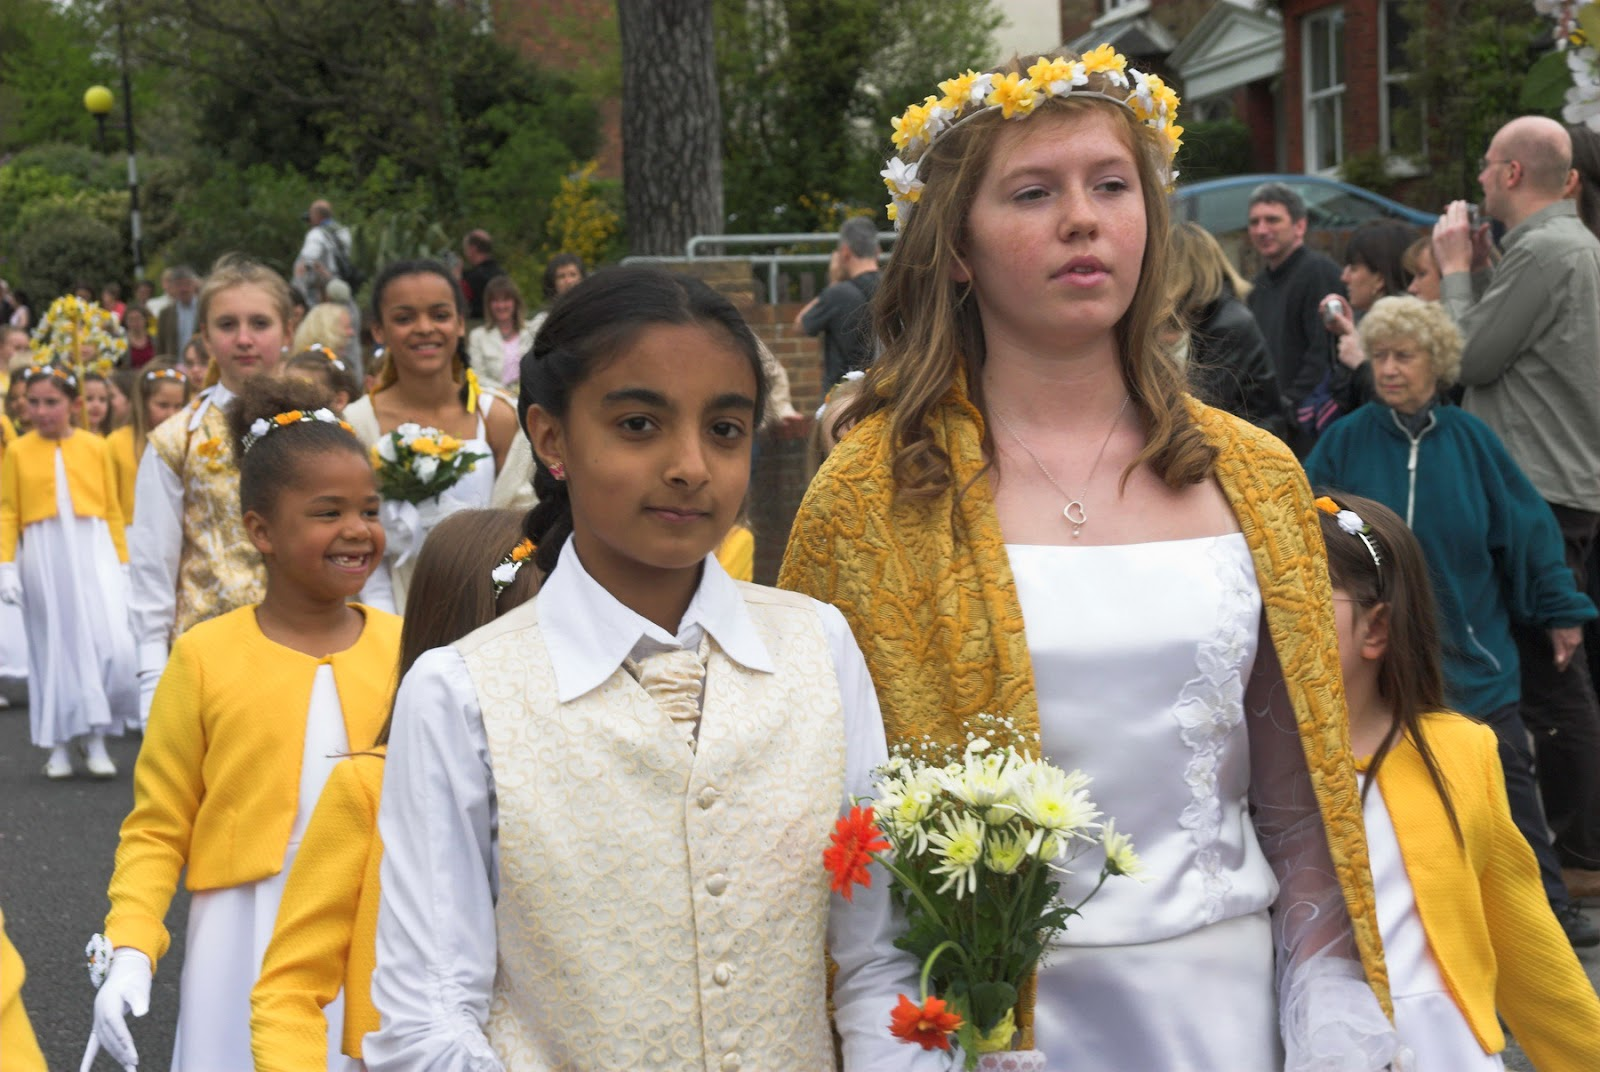 2006 Retiring May Queen, Nicola Gander, and Prince, Mahdiya Zahir, in the procession